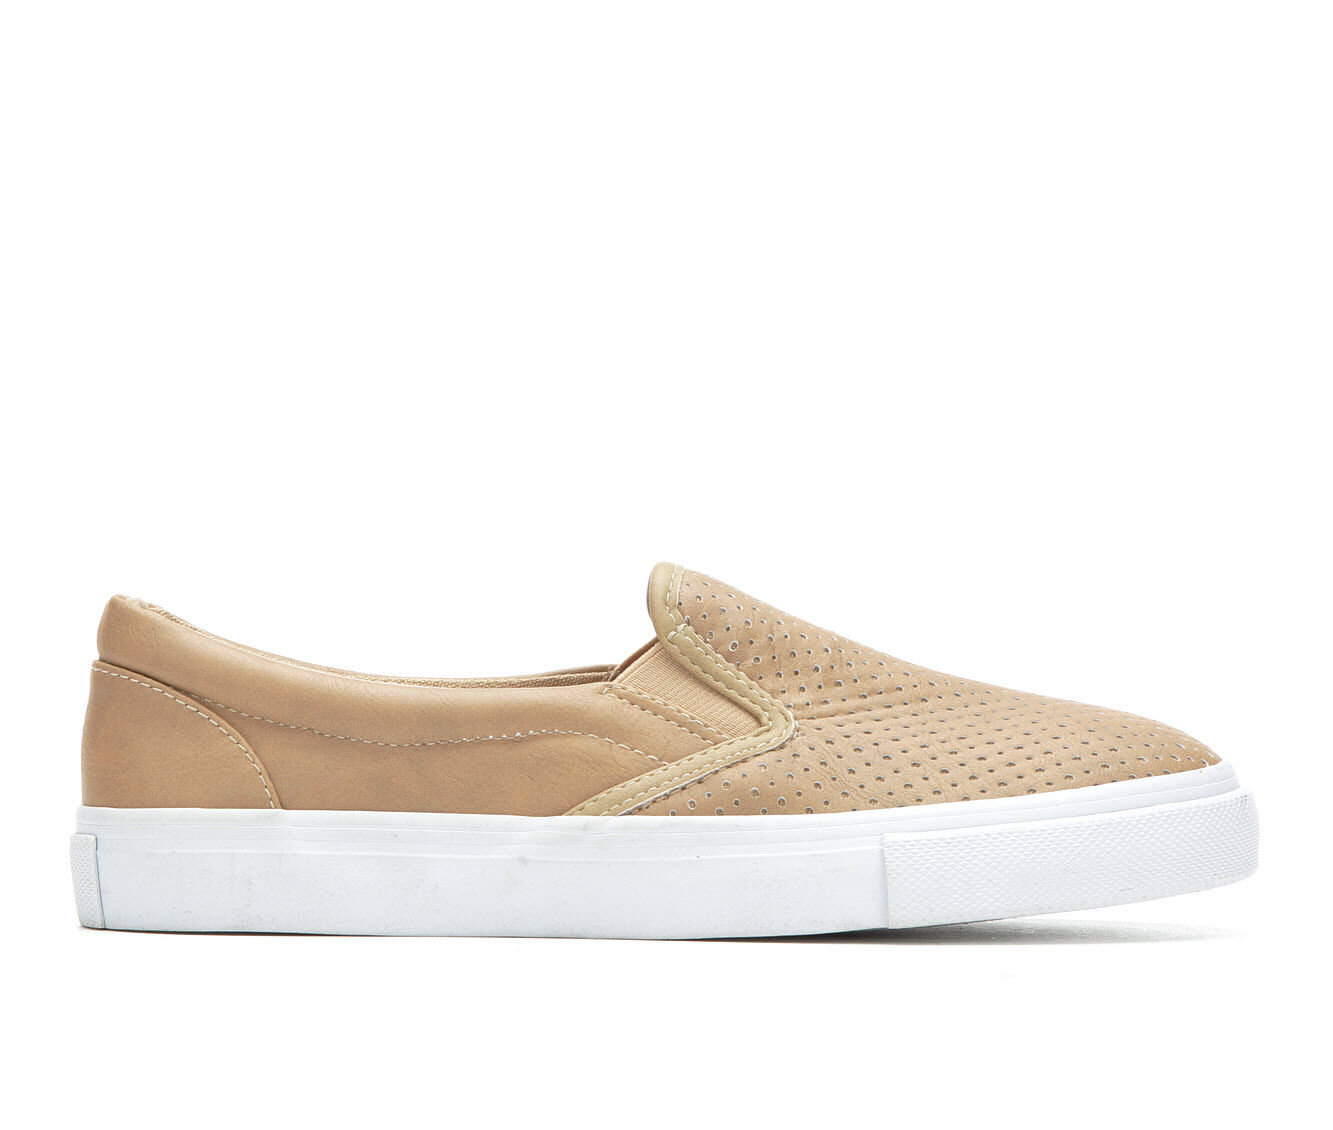 Best Quality Women's Soda Tracer Sneakers Camel